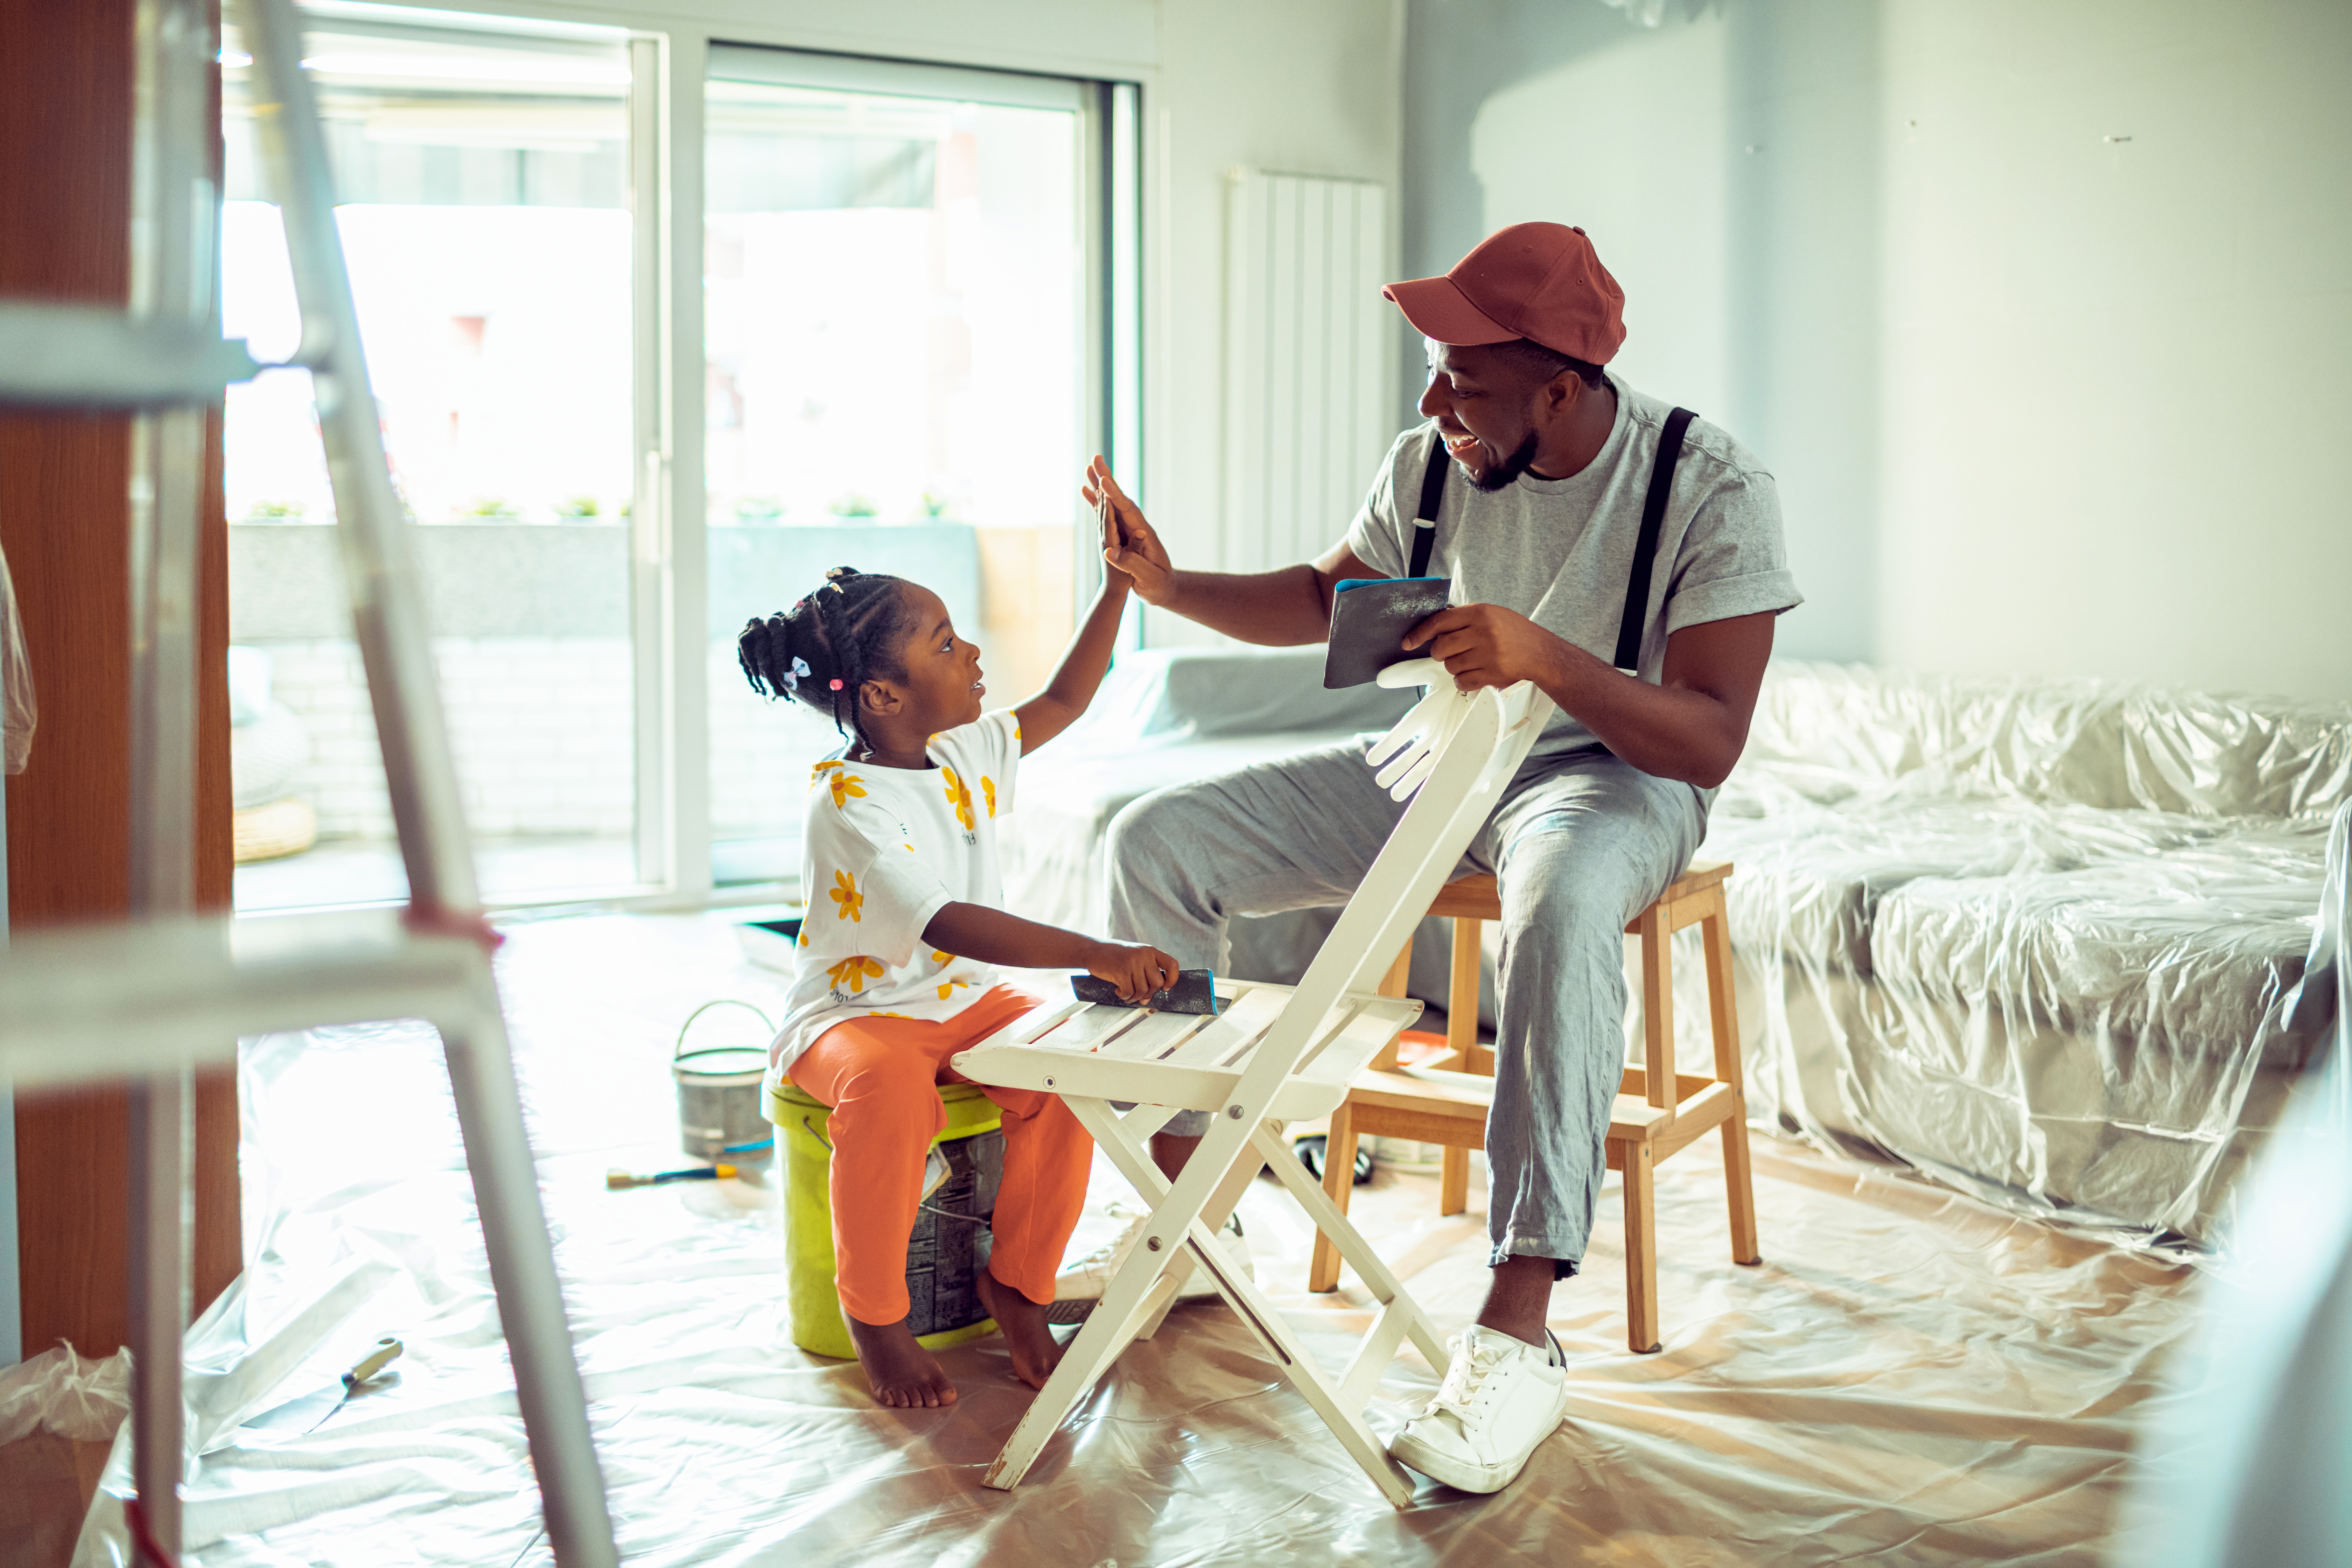 Father painting a chair with his daughter